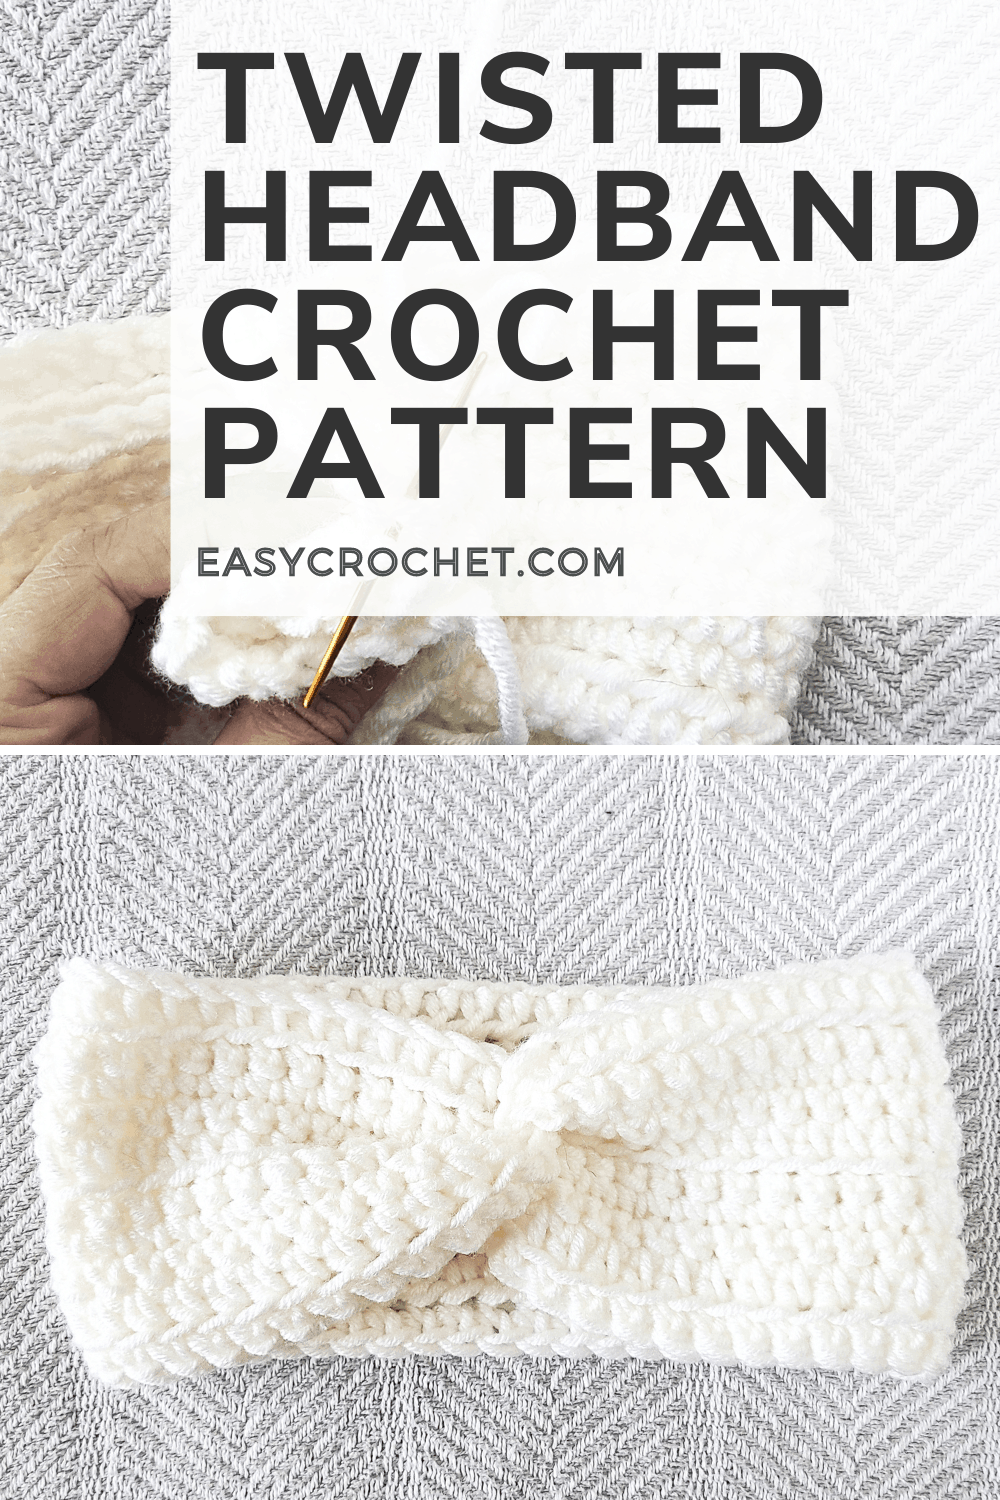 Twisted Headband Crochet Pattern